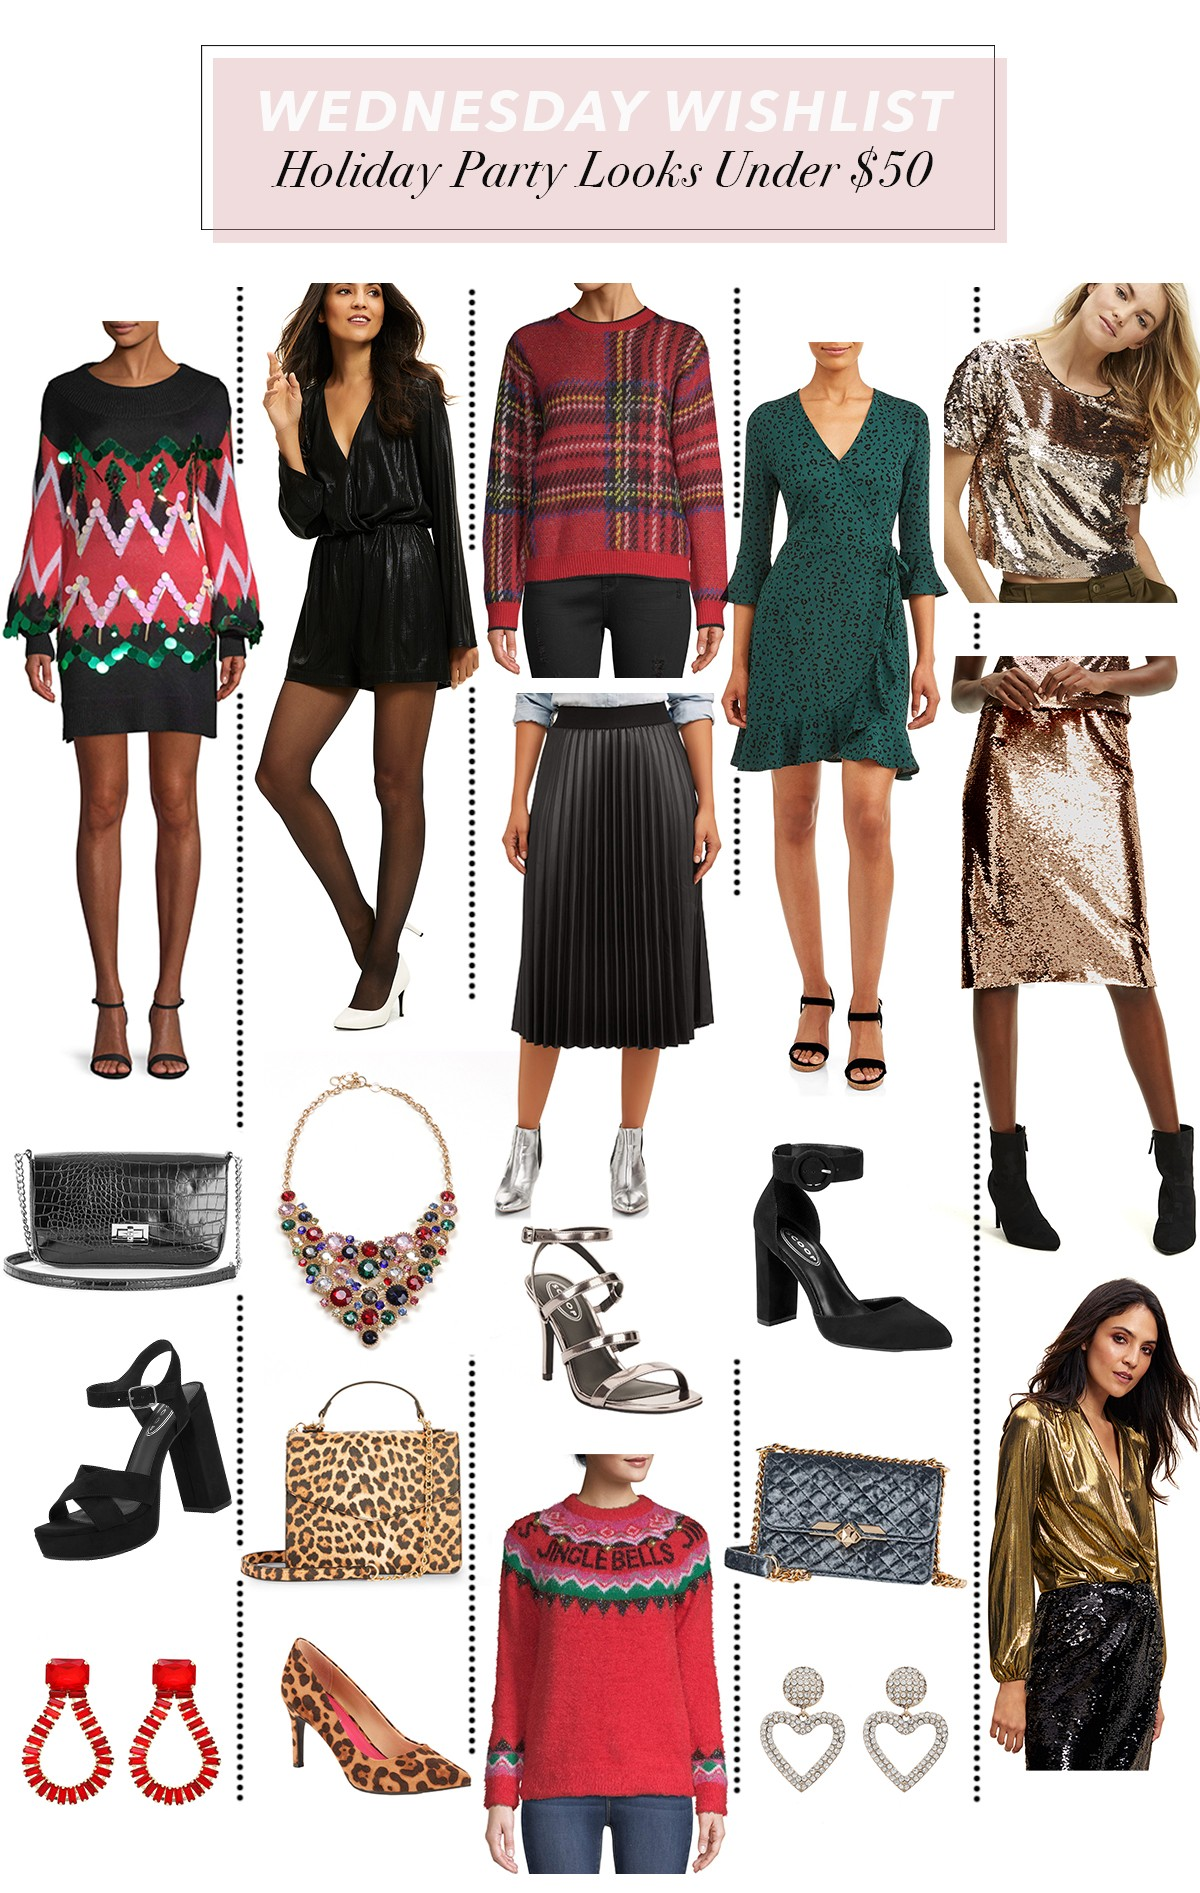 Holiday Party Outfit Ideas Under $11  Wednesday Wishlist